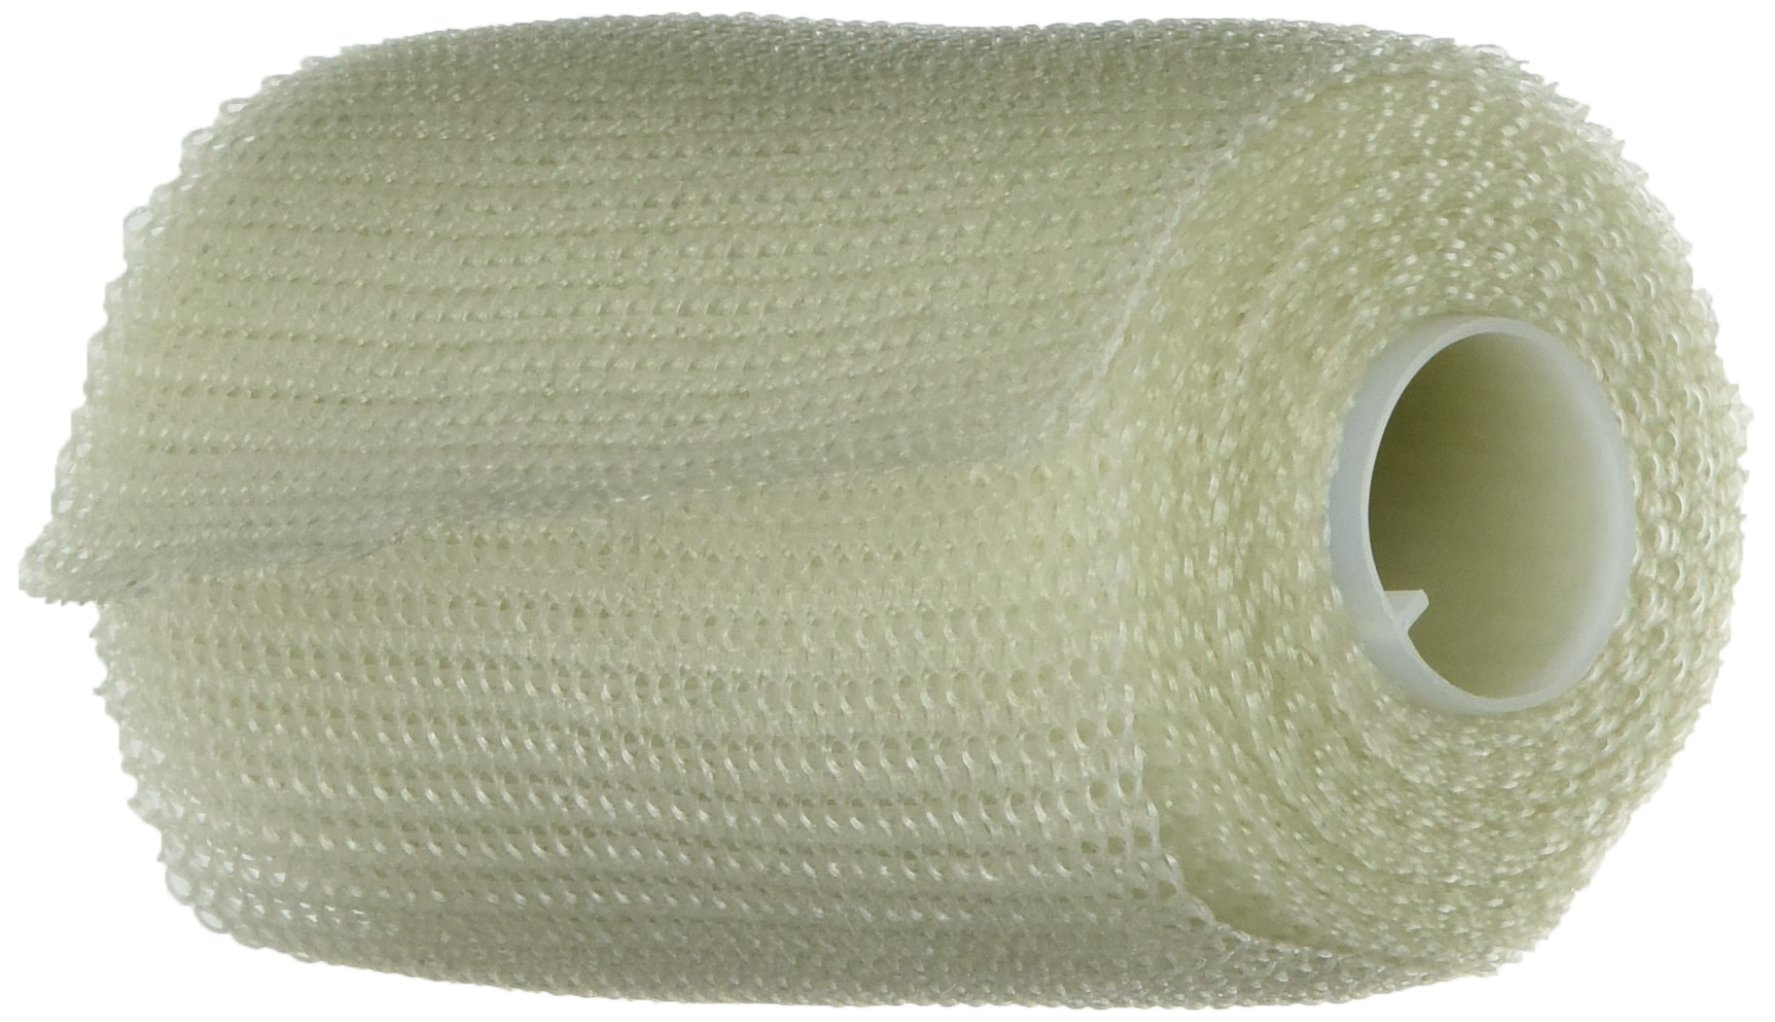 3M Health Care 82103 Soft Casting Tape, 3'' x 4 yd. Size, White (Pack of 10) by 3M Health Care